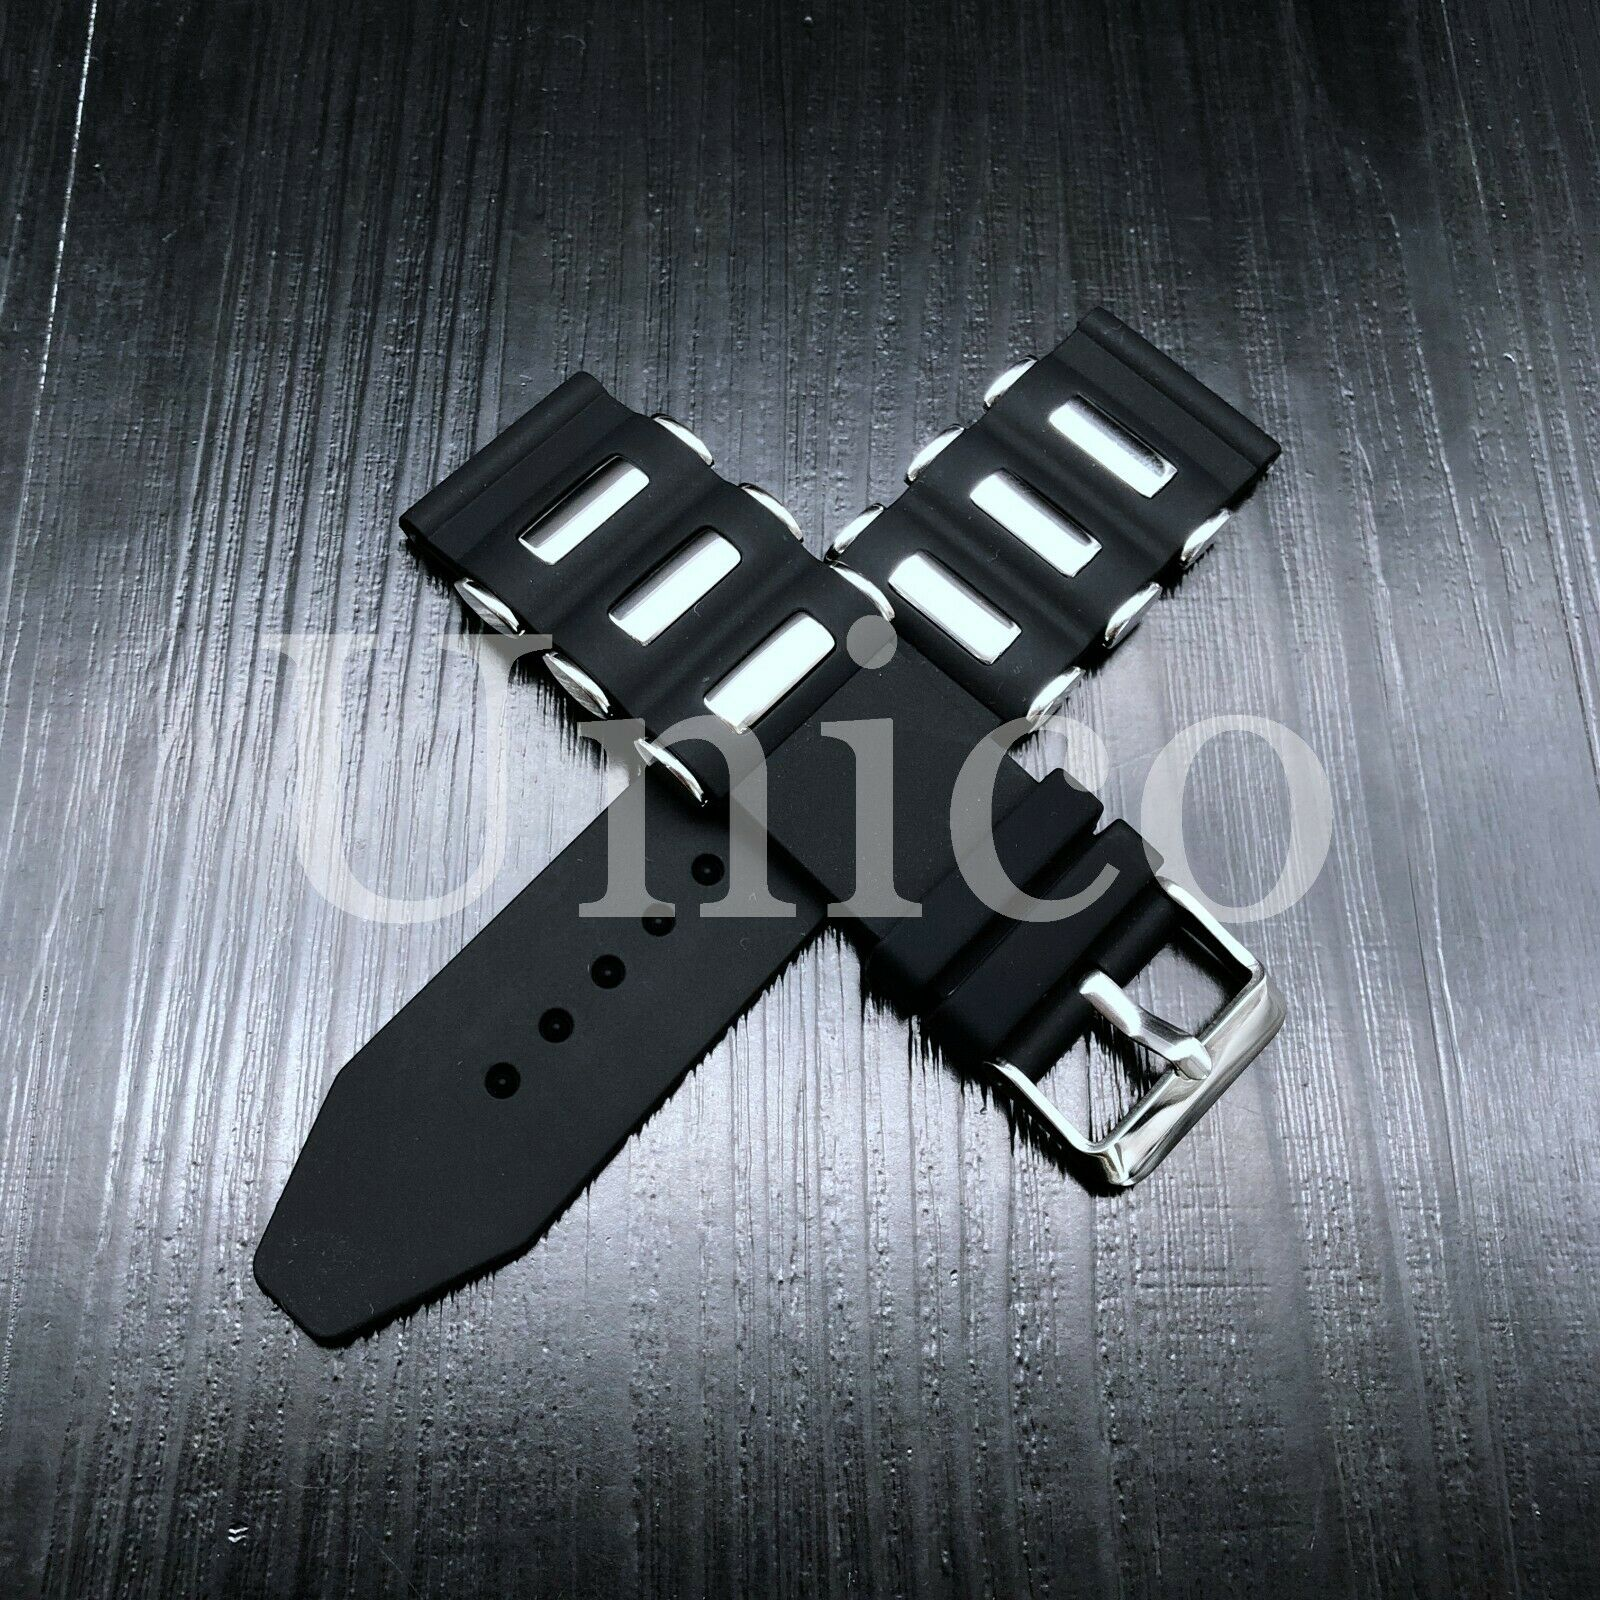 26mm russian diver silicon rubber watch band